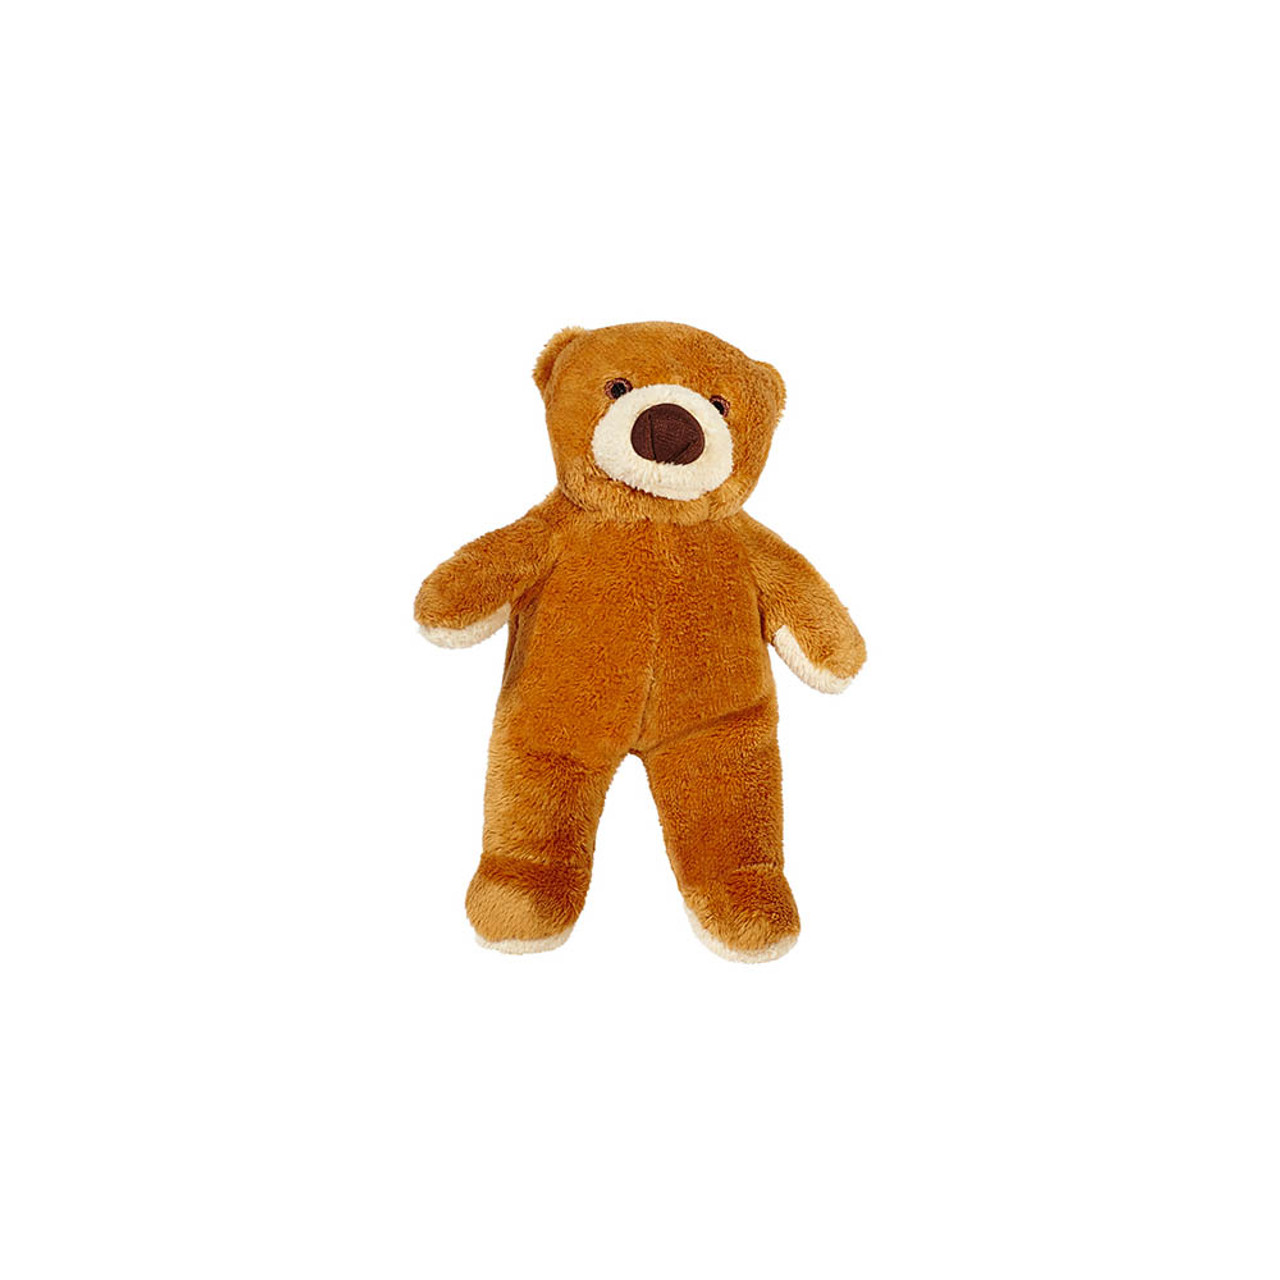 Fluff & Tuff Cubby Bear Plush Dog Toy